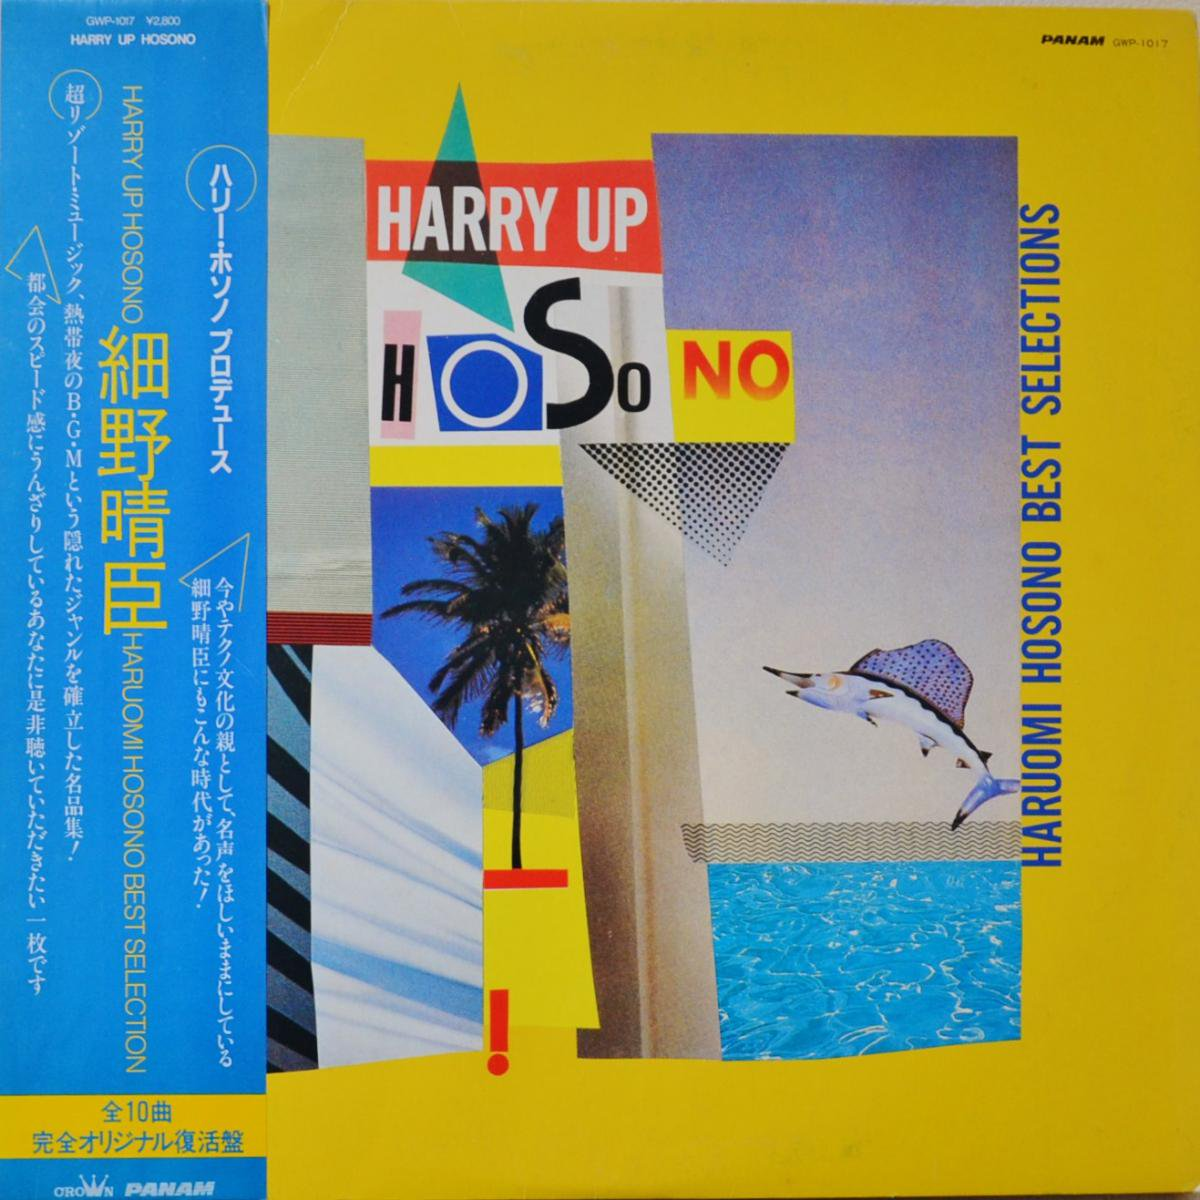 細野晴臣 HARUOMI HOSONO / HARRY UP HOSONO - HARUOMI HOSONO BEST SELECTIONS (LP)